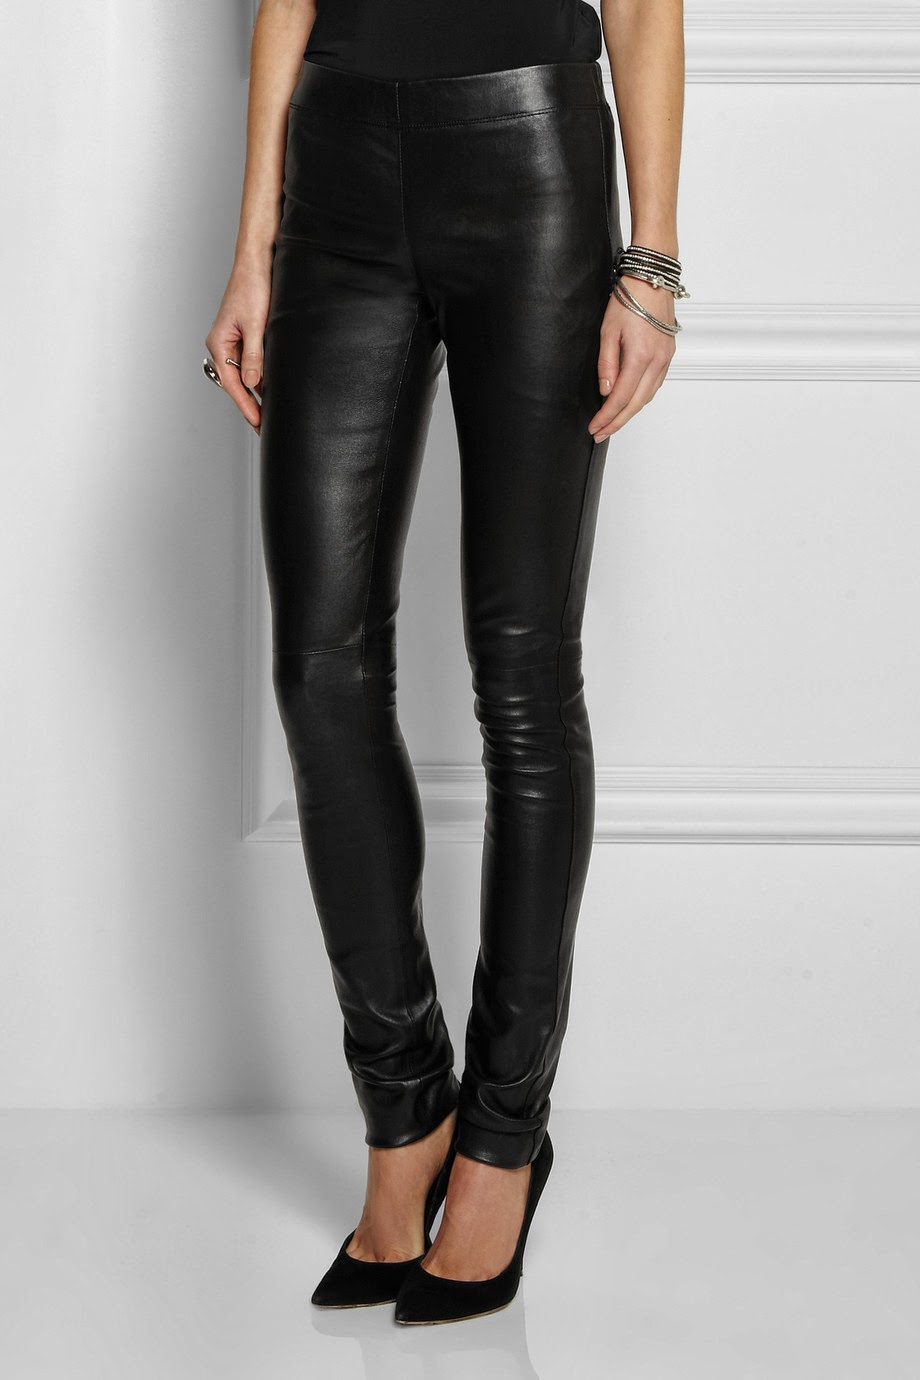 Our bonded leather jean style legging is extremely flattering, stretchy and comfortable. The front of the jean is soft genuine leather, permanently bonded to a cotton Lycra stretch liner, which gives plenty of stretch, next to skin comfort and great recovery without baggy knees.